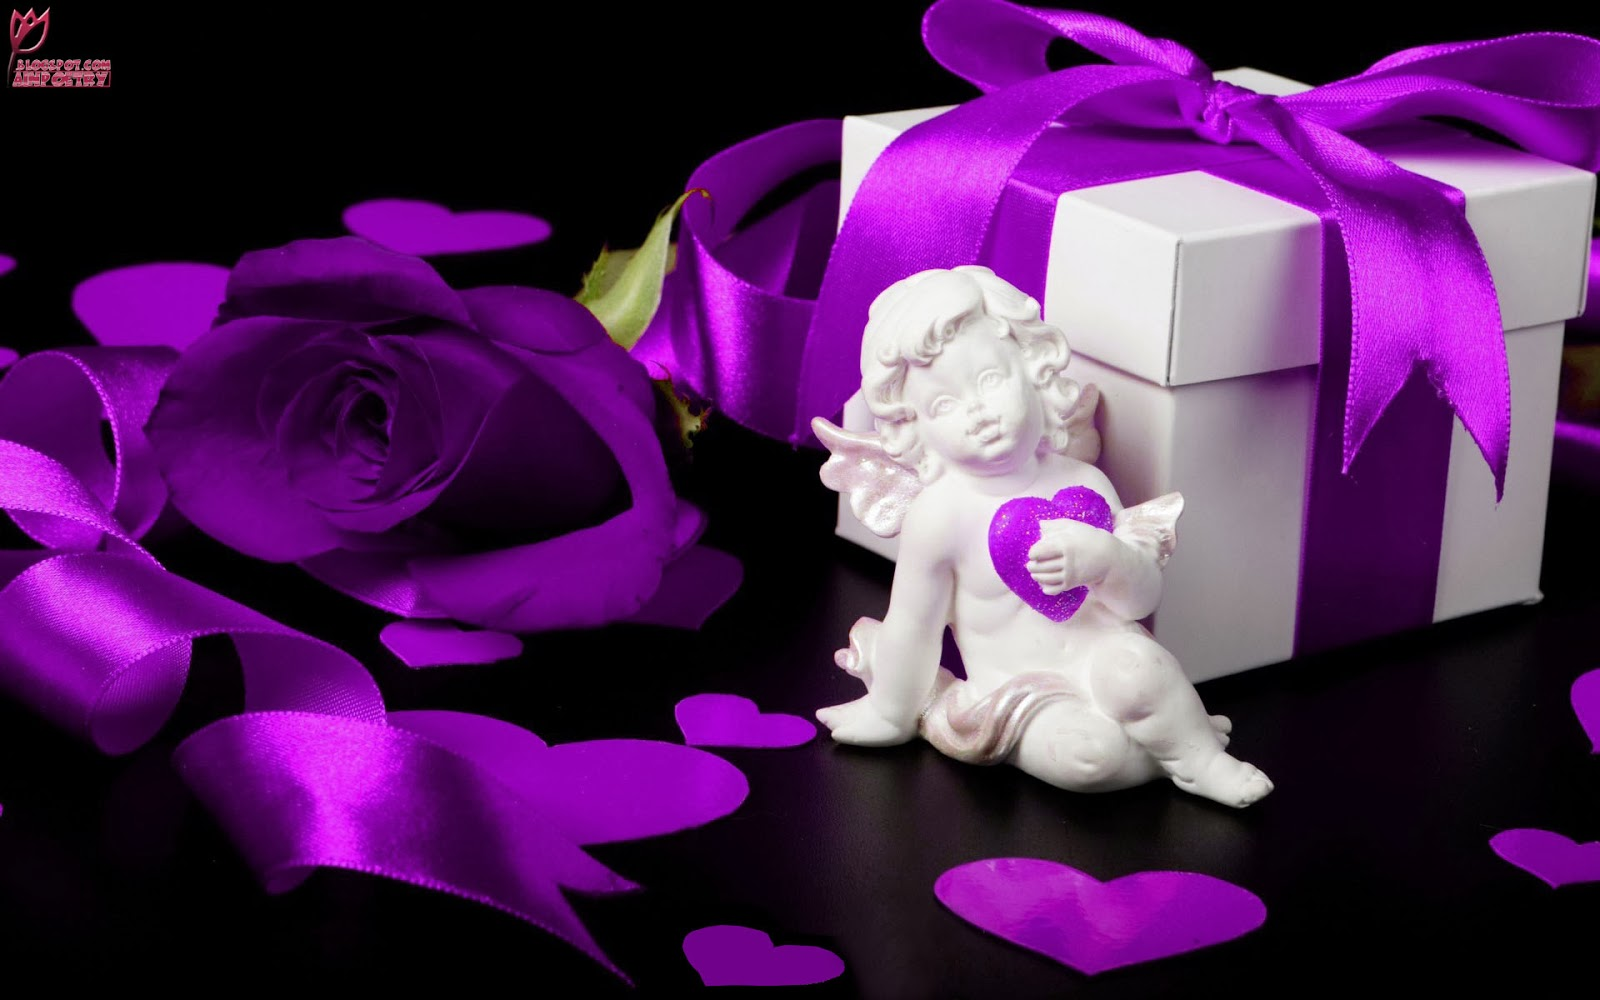 Happy-Valentine's-Day-Wishes-Wallpaper-With-Special-Gift-Image-HD-Wide